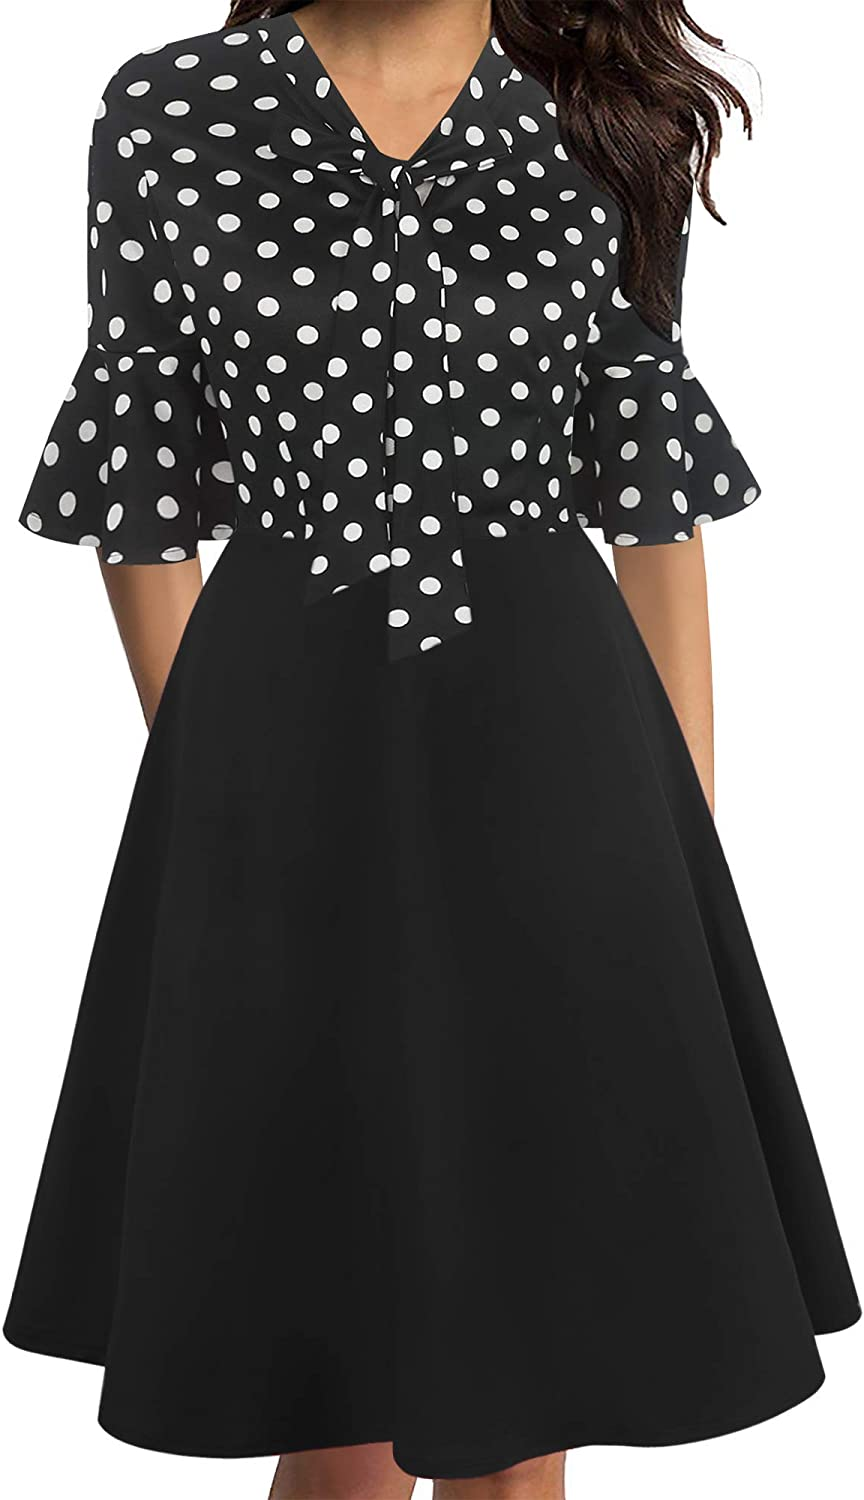 oxiuly Women's Vintage Bow Tie V-Neck Flare Sleeve Midi Casual A-Line Dress OX305